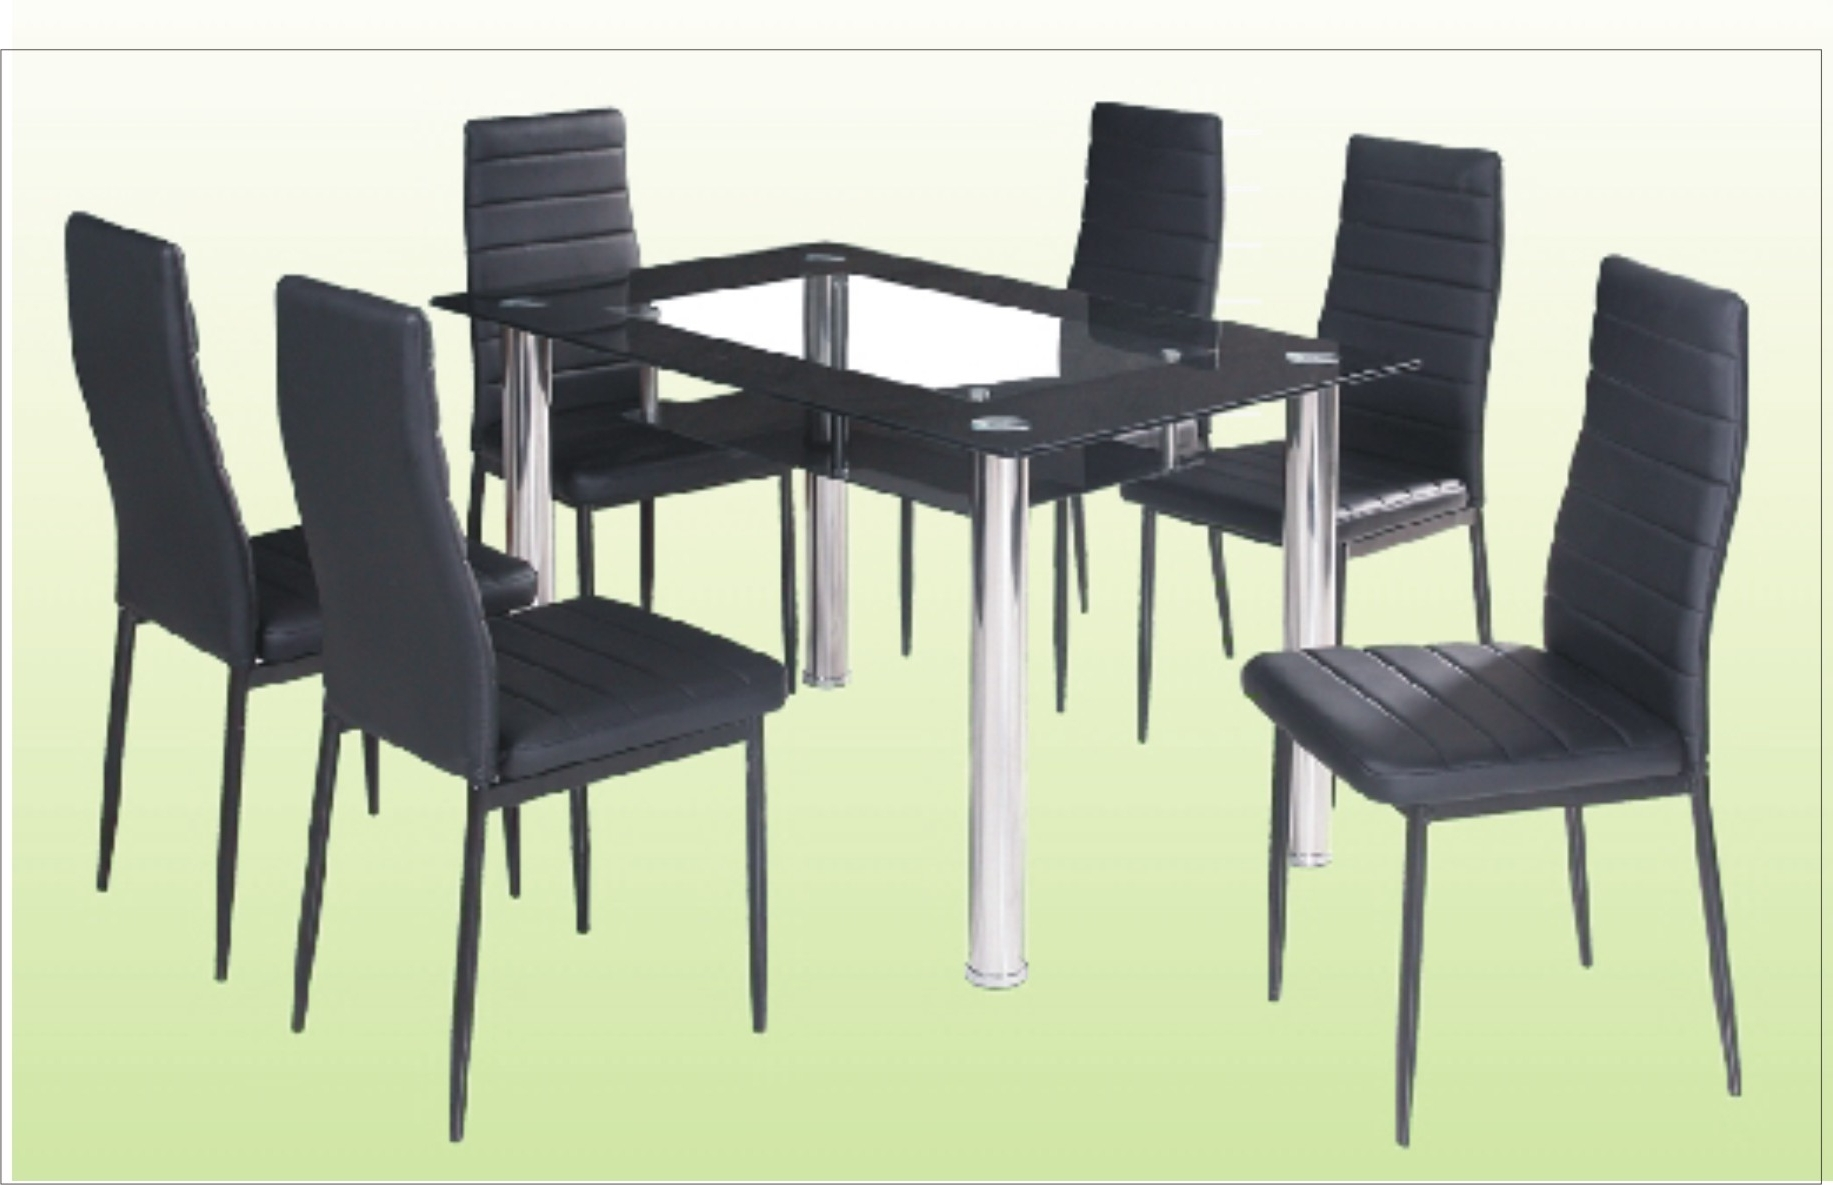 Glass Dining Tables And 6 Chairs Throughout Well Known 6 Chair Dining Table With Glass Top – Cebu Appliance Center (View 17 of 25)